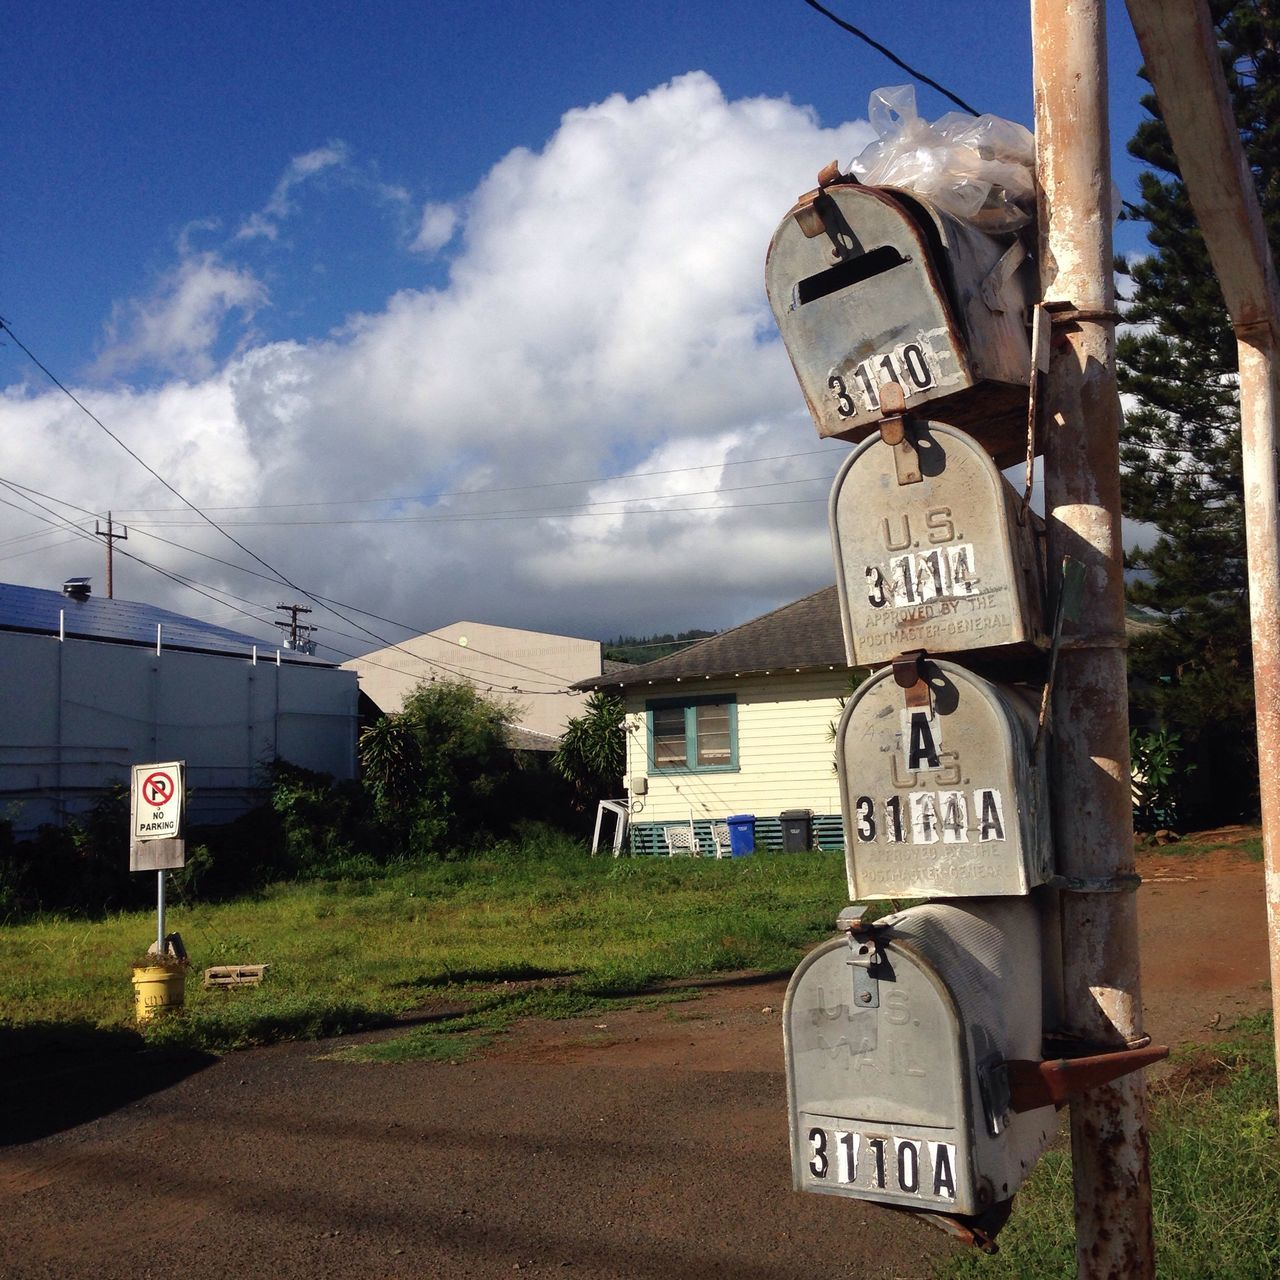 Mailbox Communication Sky Text Cloud - Sky Guidance Day Road Sign Outdoors No People Speed Limit Sign Architecture Nature